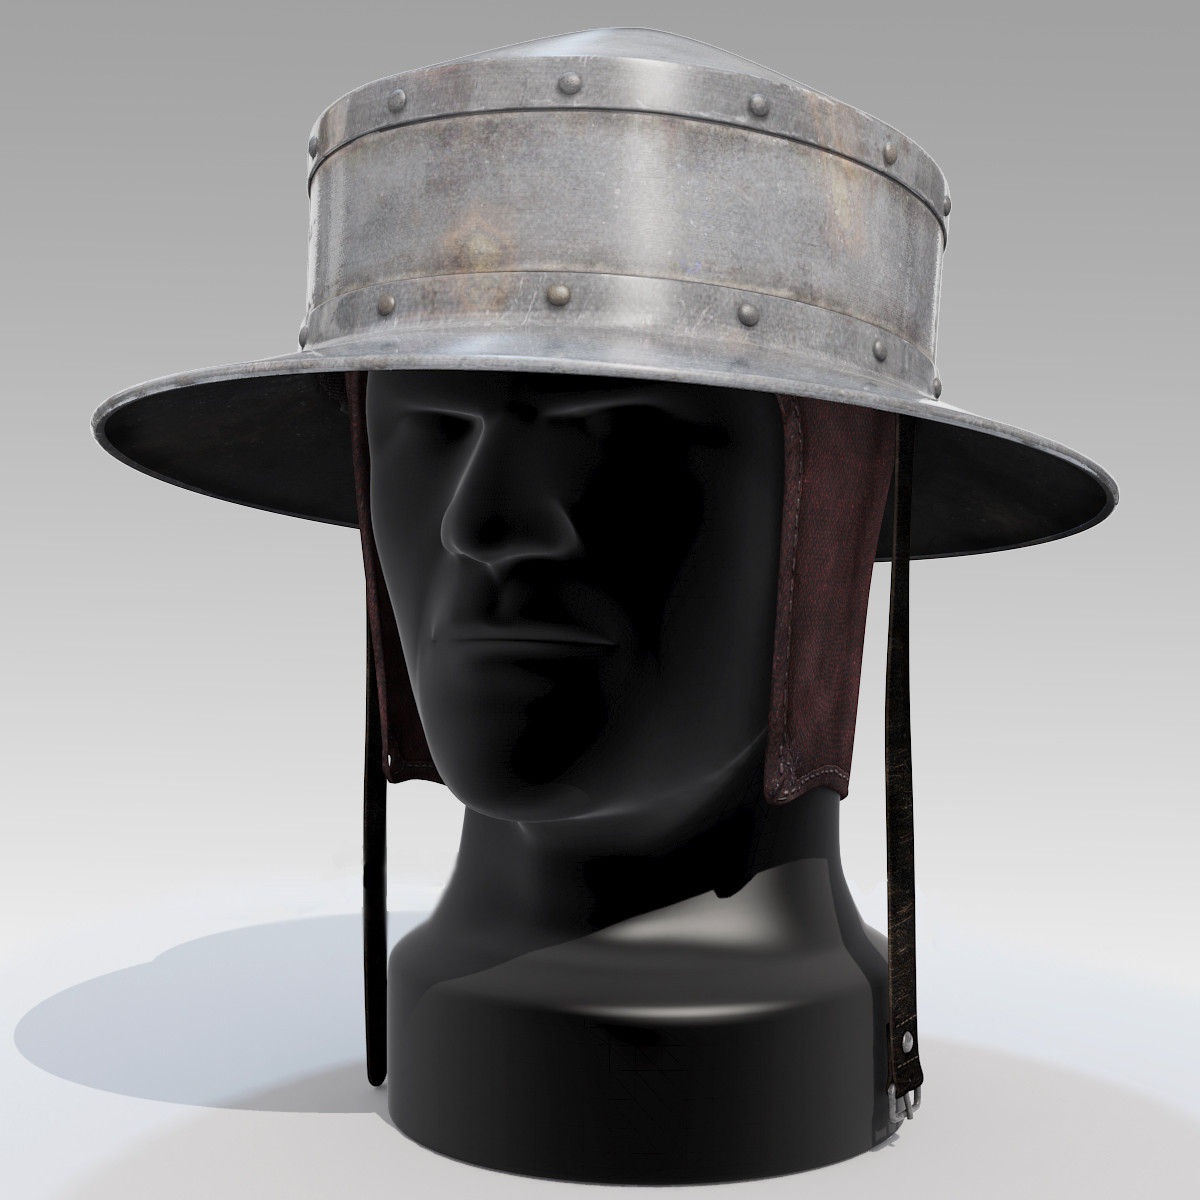 pointed_kettle_hat_01A.jpg